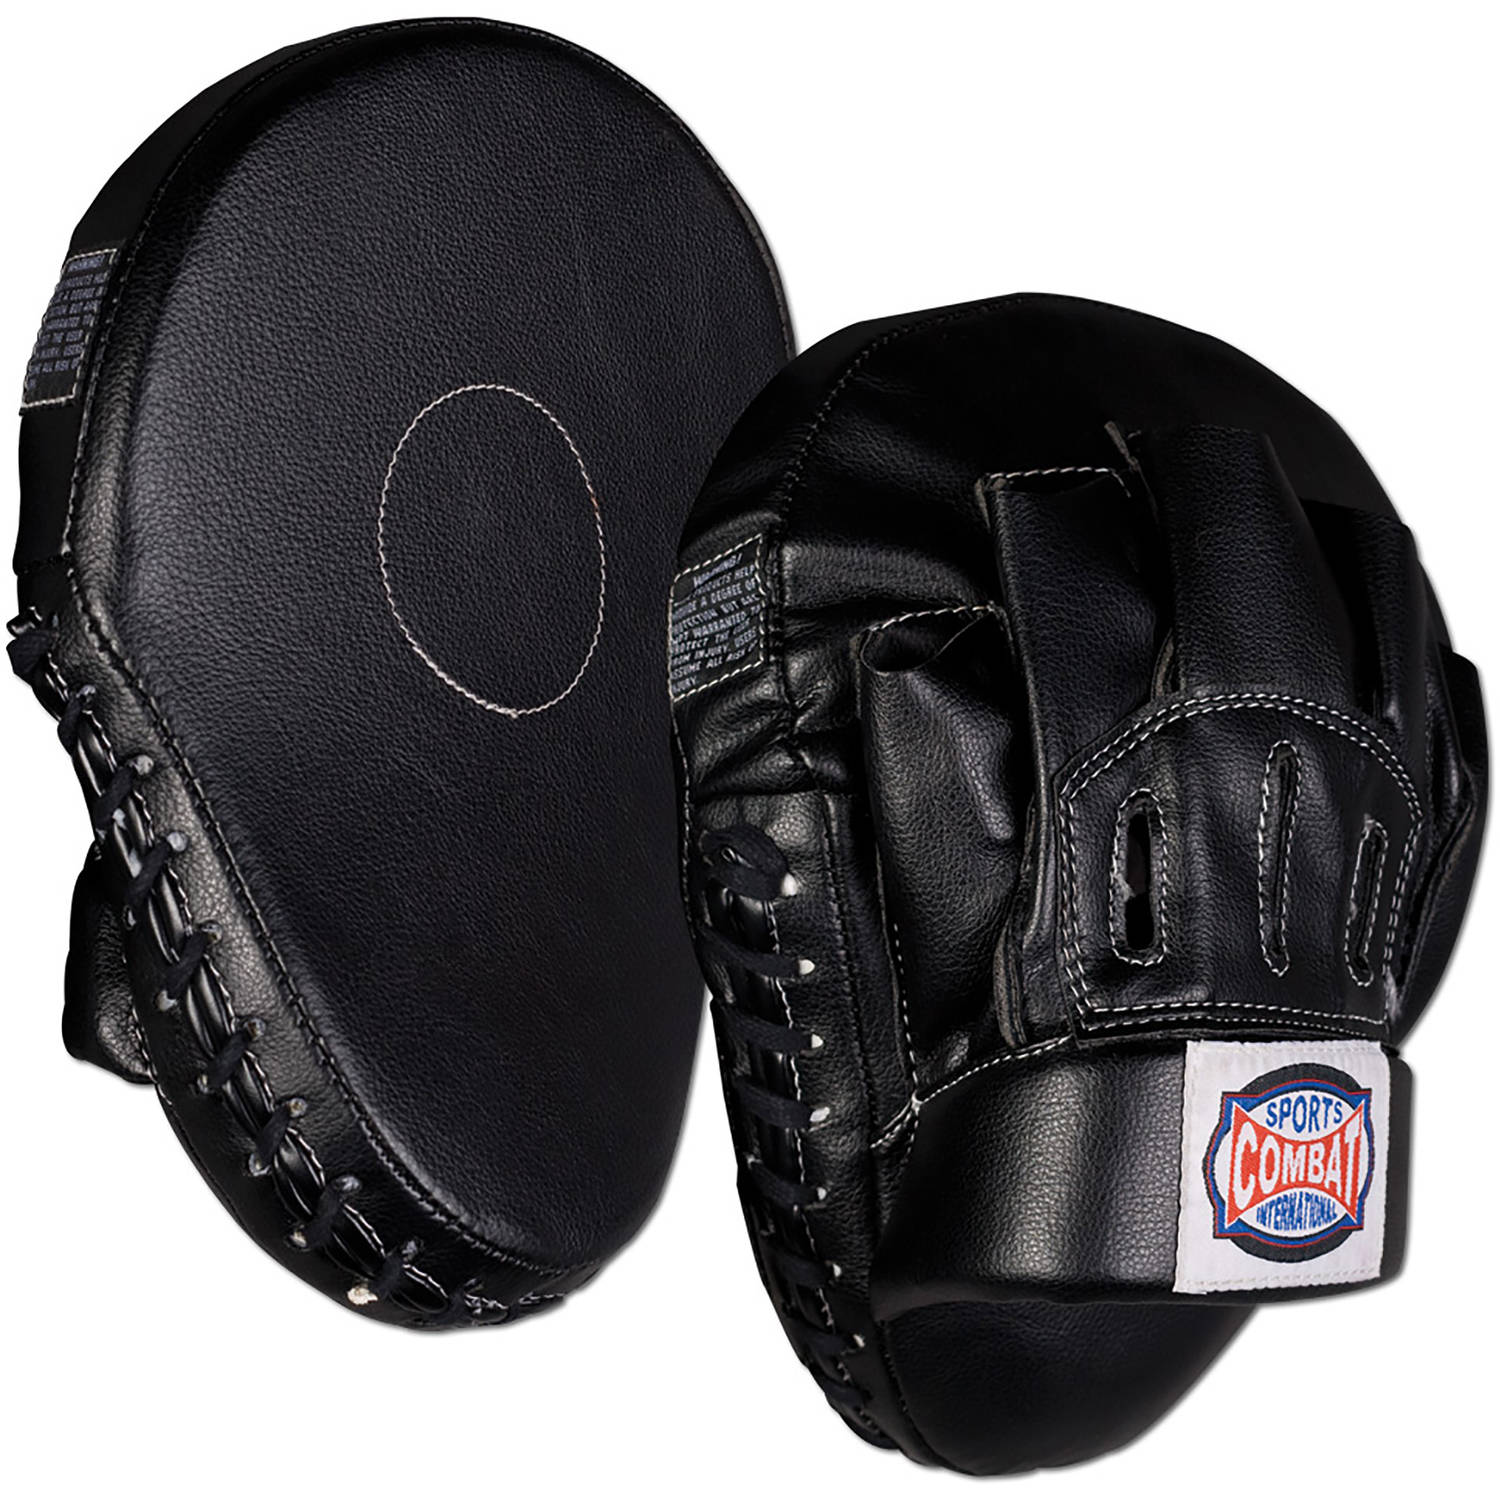 Combat Sports Punch Mitts by